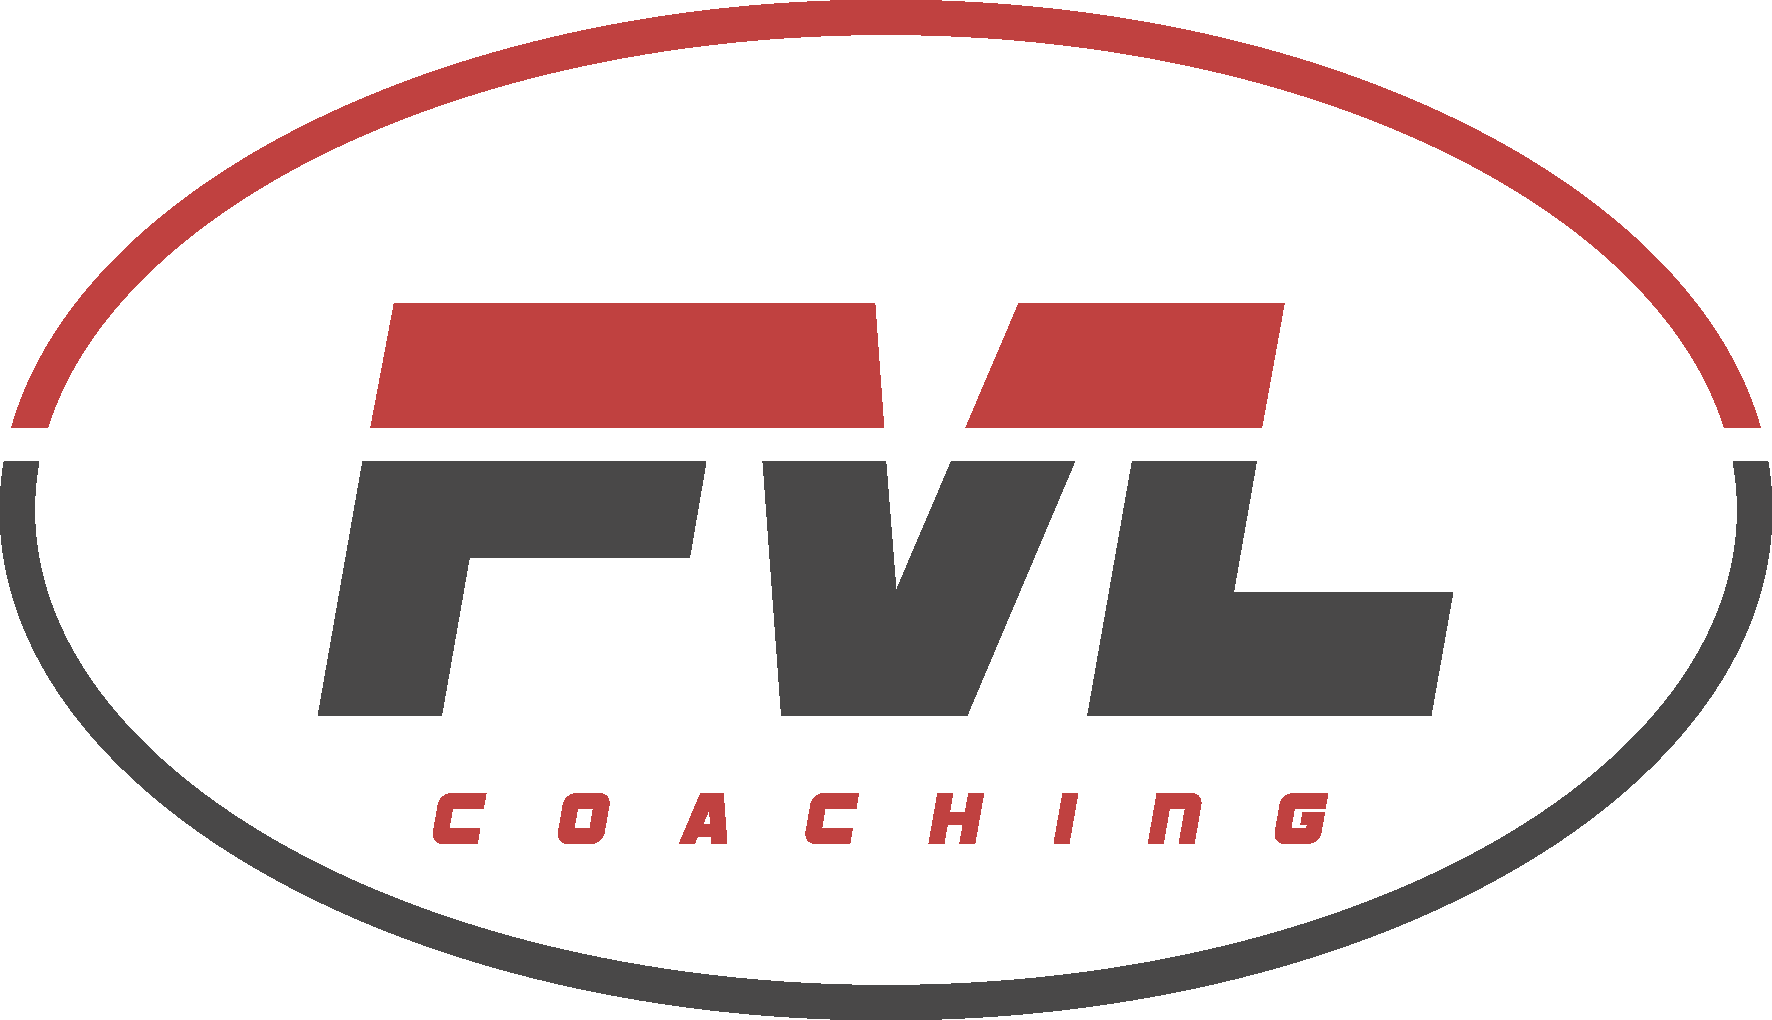 FVLcoaching.png